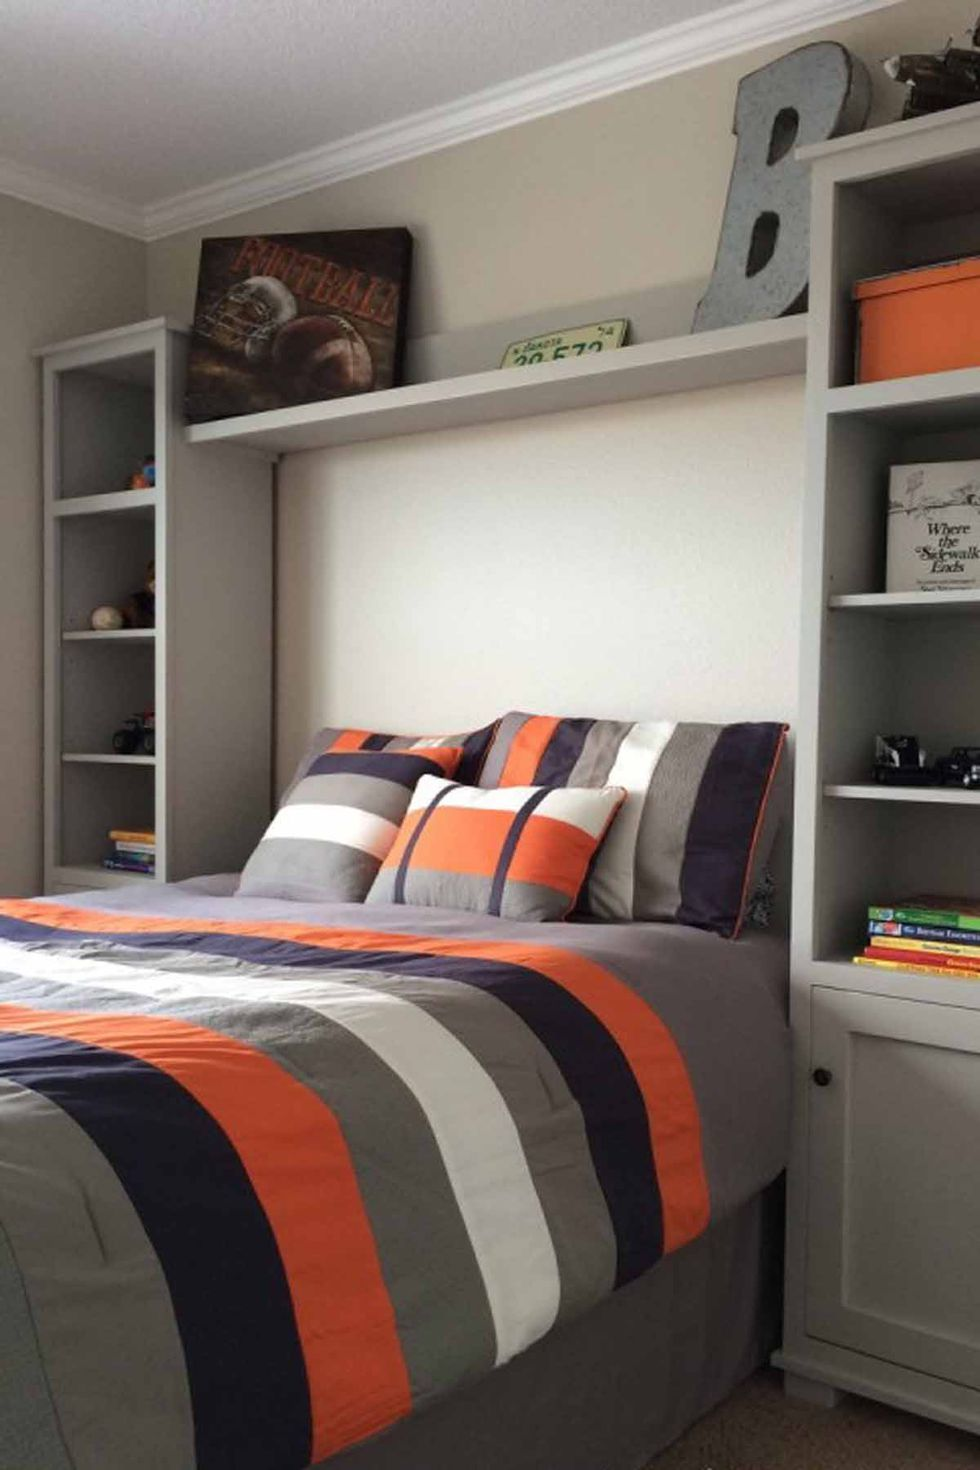 10 easy ways on how to organize your bedroom  lancaster